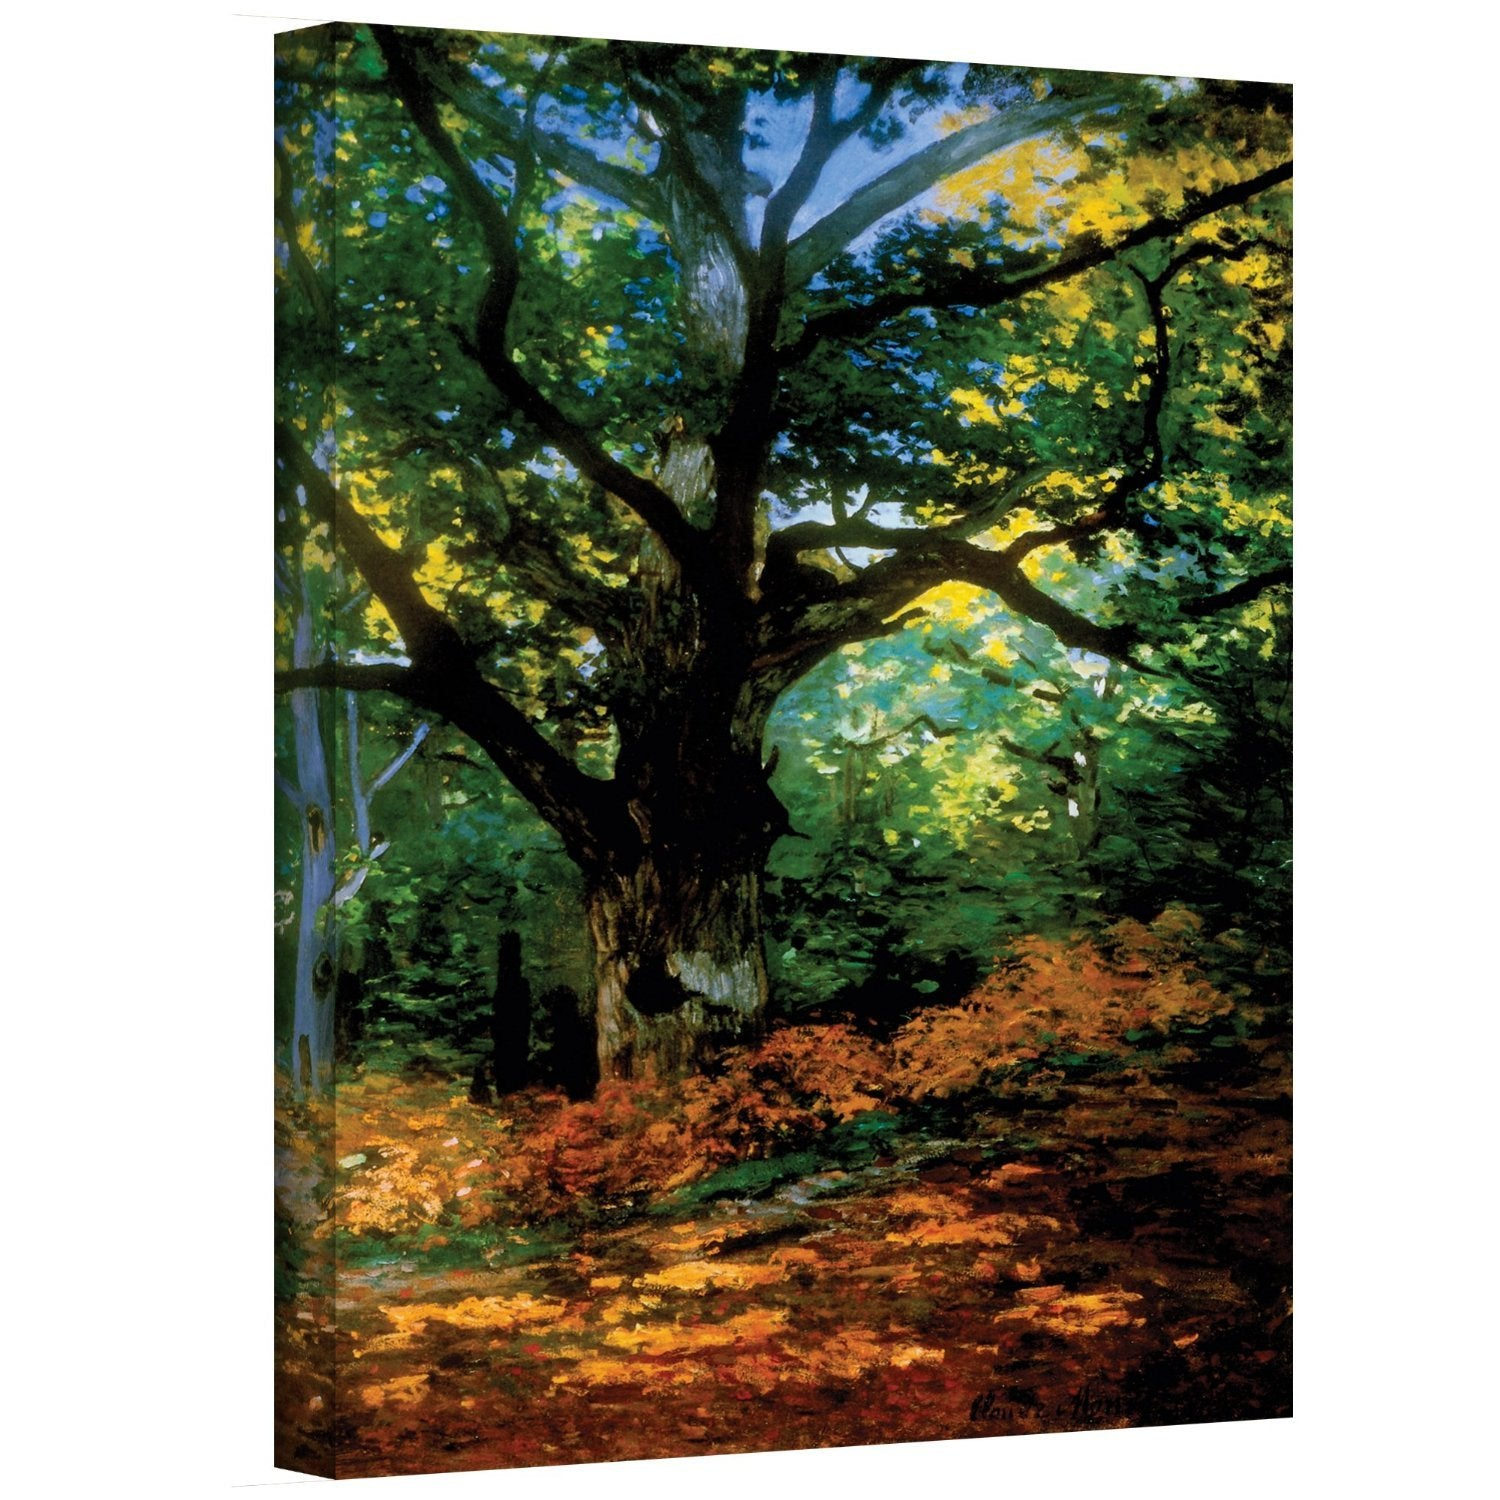 "Claude Monet, ""Bodmer Oak at Fountainbleau Forest"" 18"" x 24"" x 1.5"" Canvas Gallery Wrap Print"